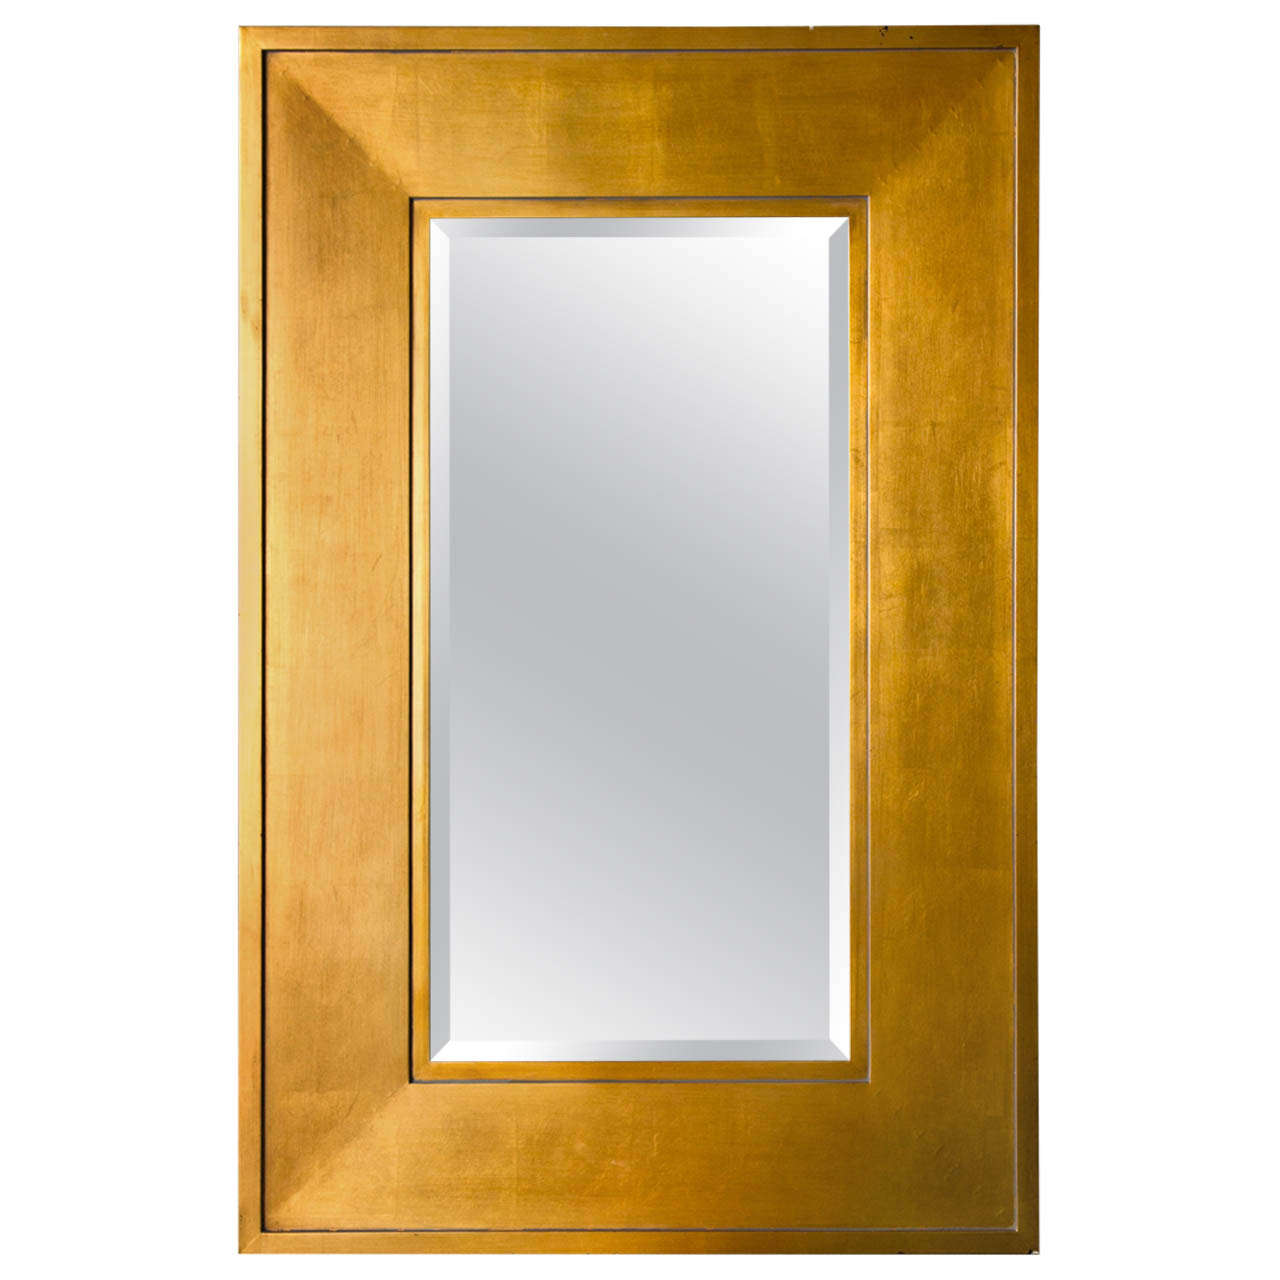 1970 39 s gold framed mirror with beveled mirror glass at 1stdibs for Gold wall mirror